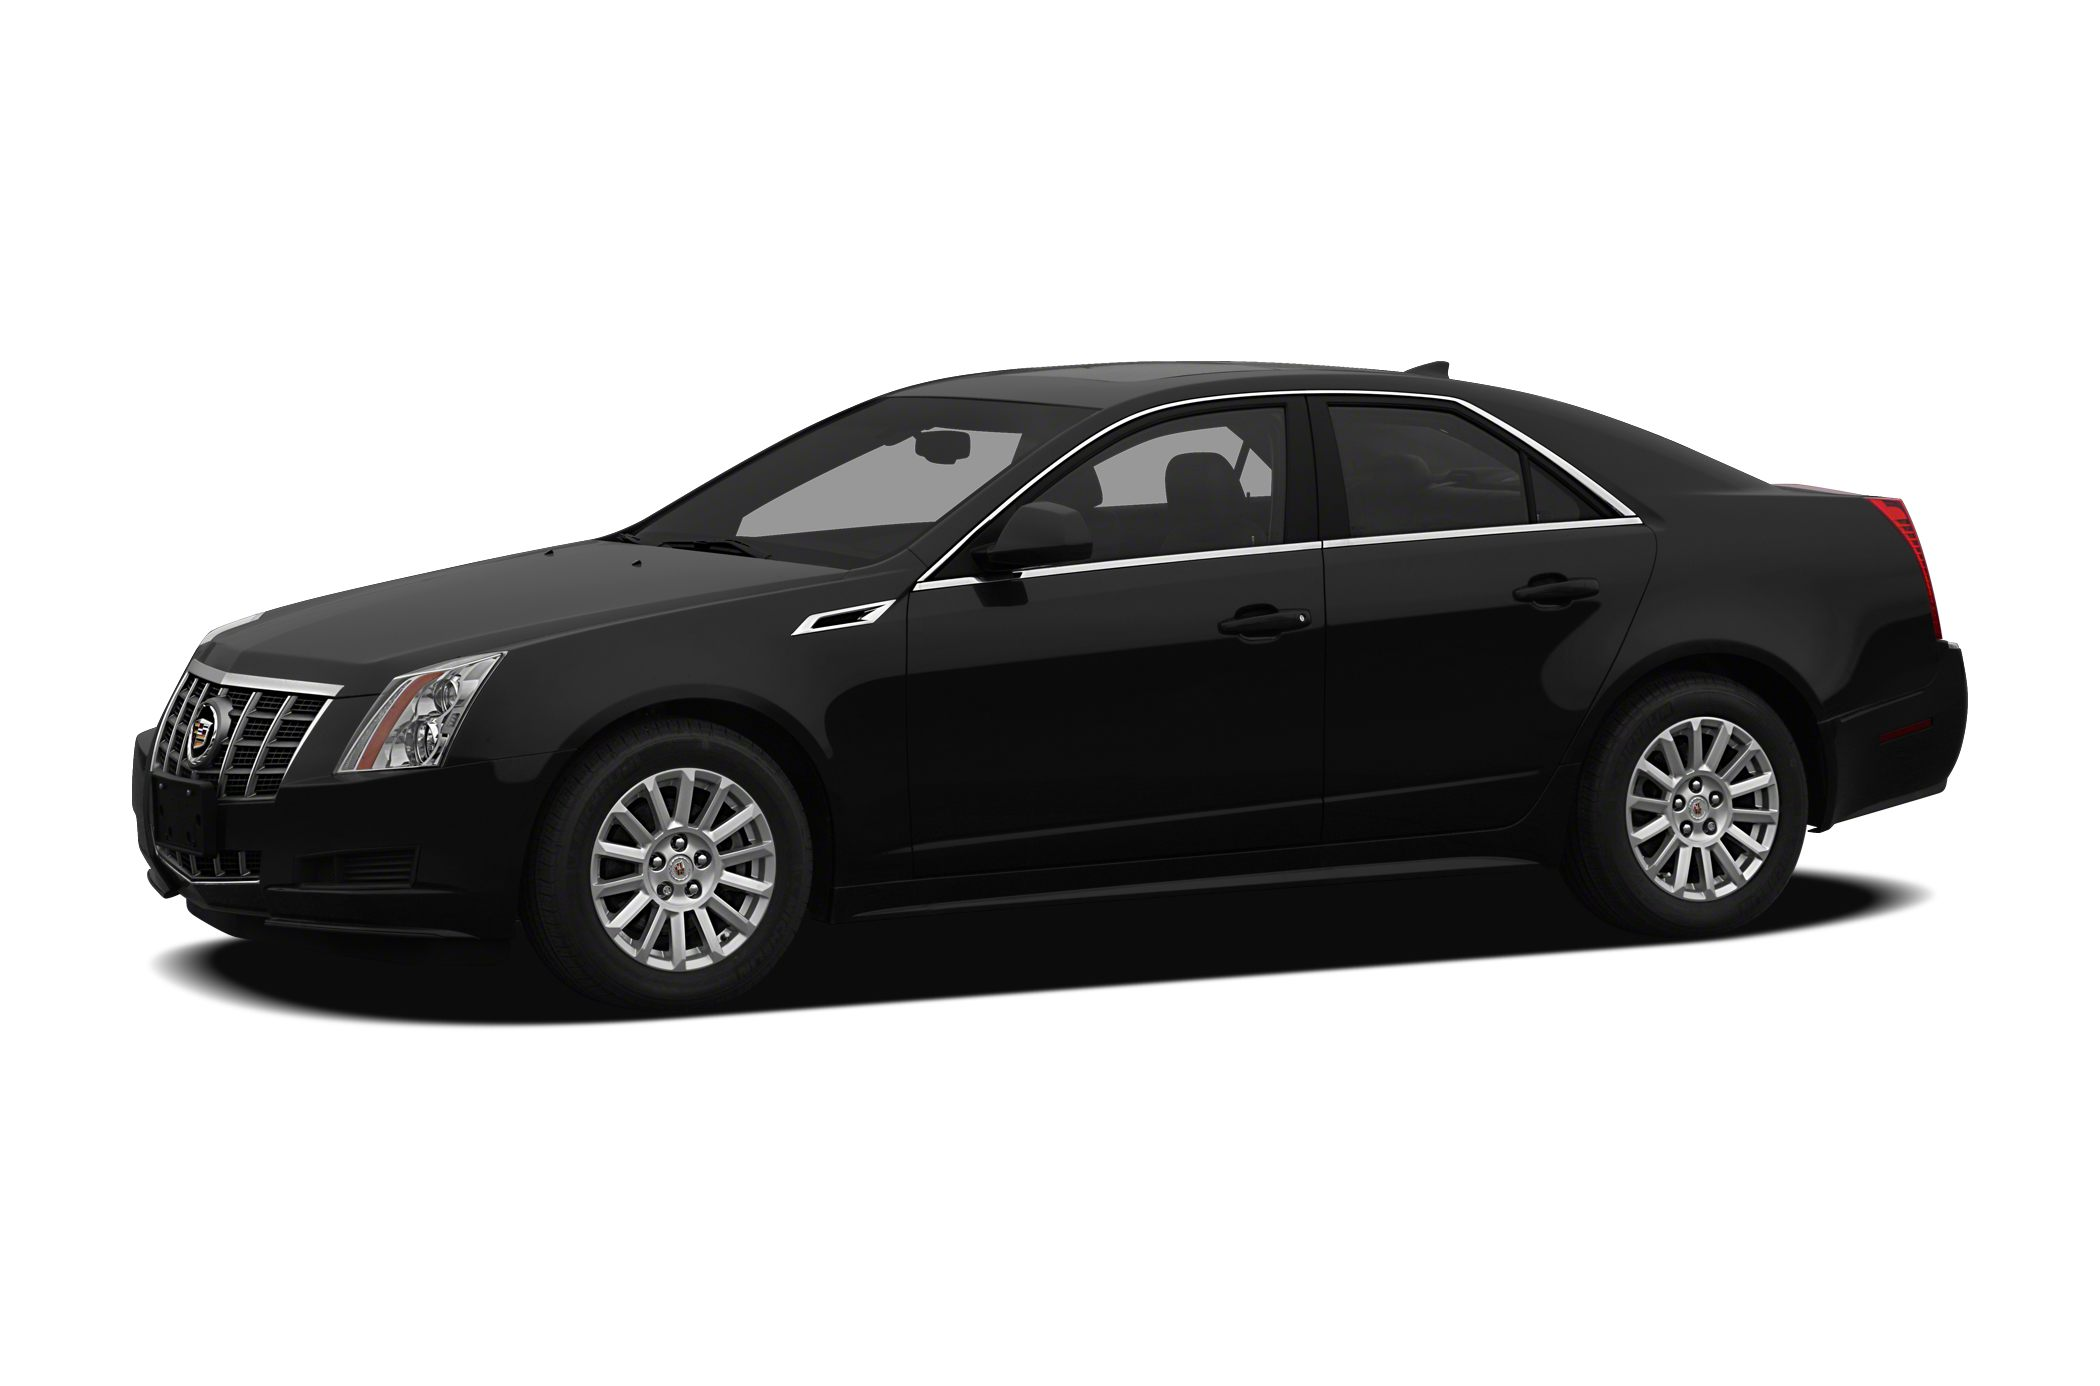 2012 Cadillac CTS Base Sedan for sale in Greenville for $23,990 with 37,828 miles